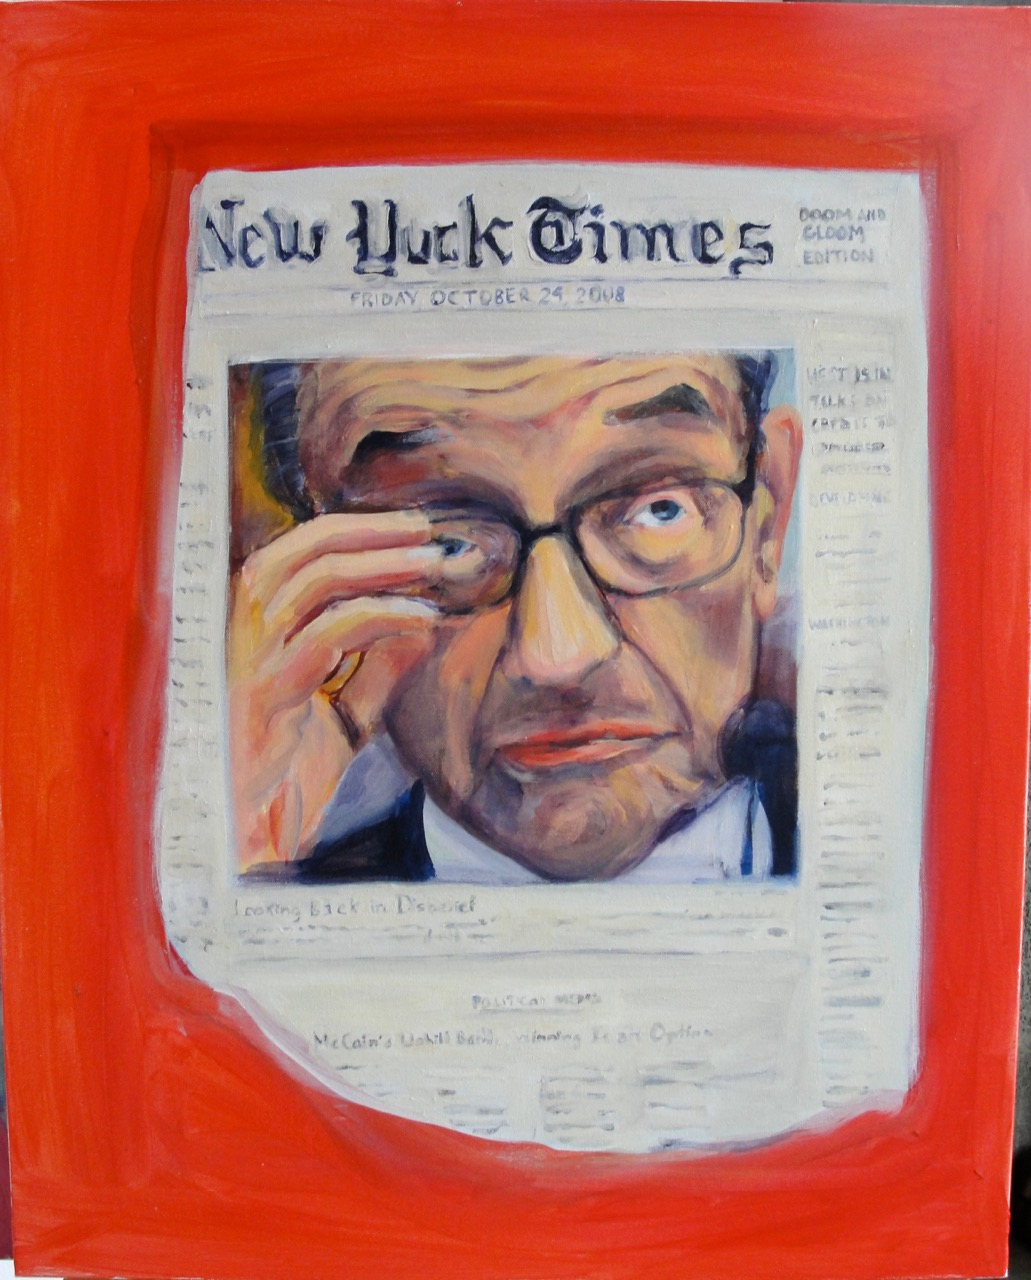 """GREENSPAN IN DISBELIEF (2010). Acrylic on canvas, 30 x 24"""" inches. Private collection, U.S."""